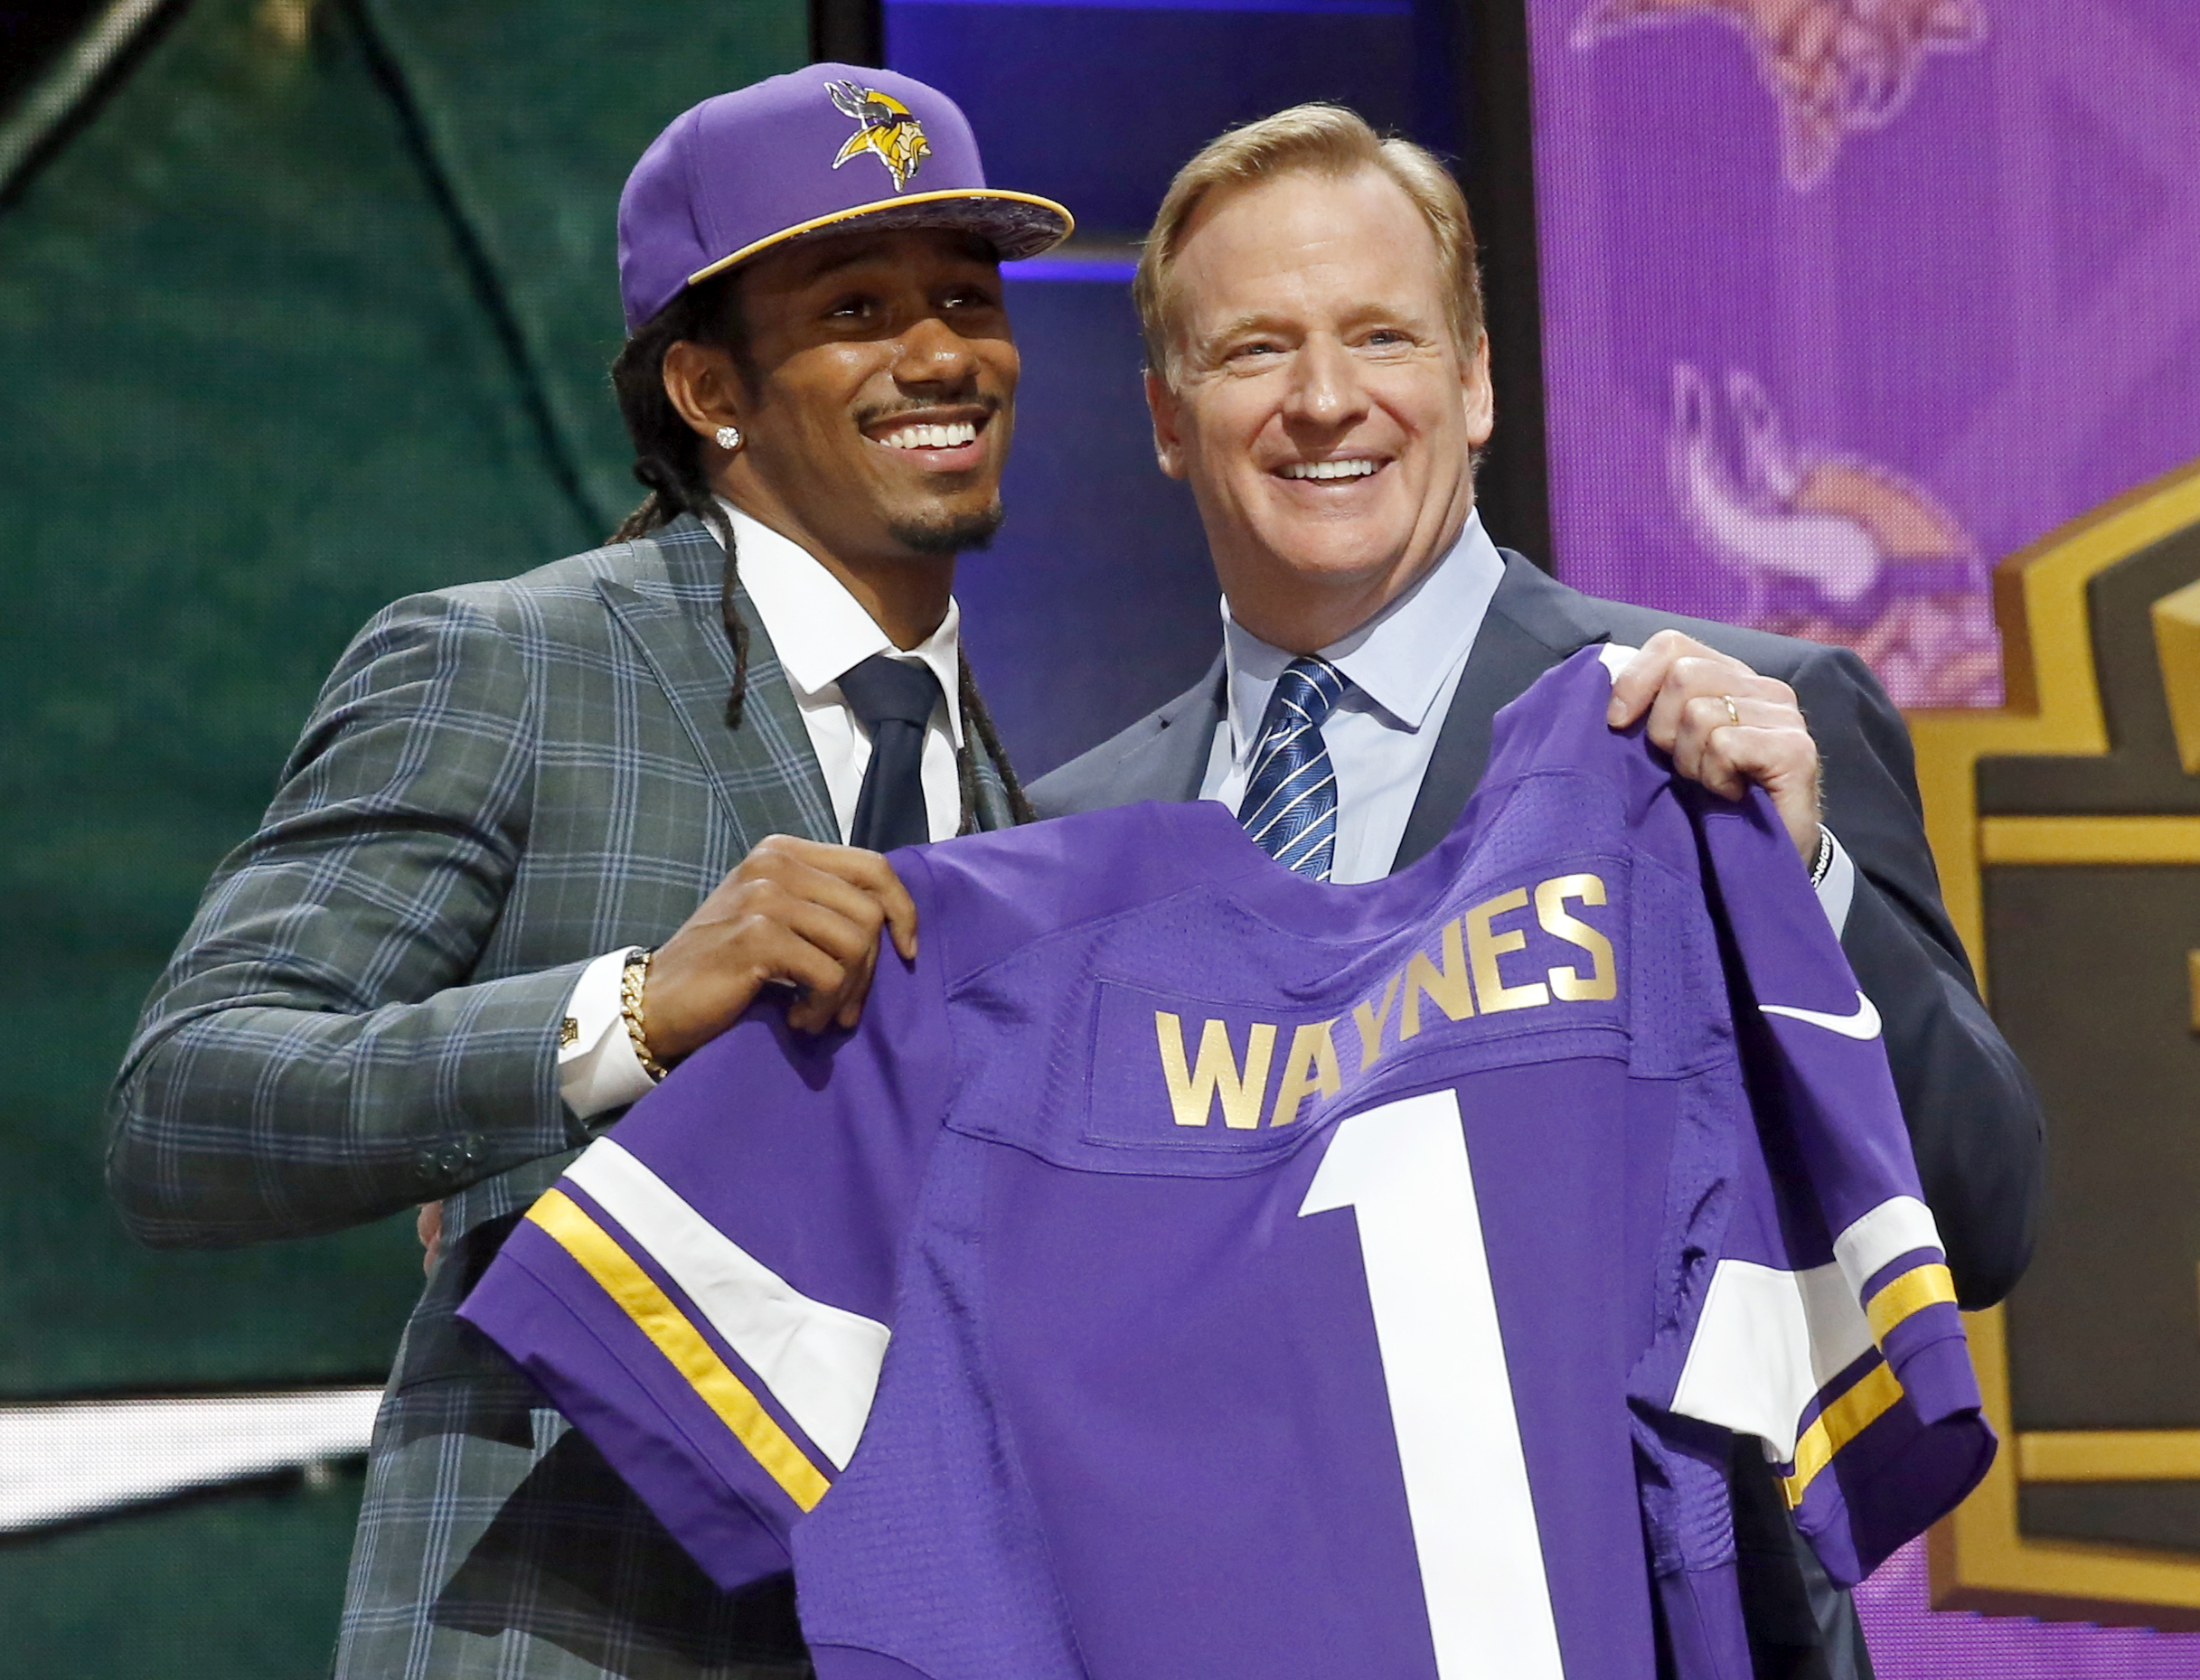 Michigan State defensive back Trae Waynes poses for photos with NFL commissioner Roger Goodell after being selected by the Minnesota Vikings as the 11th pick in the first round of the 2015 NFL Draft,  Thursday, April 30, 2015, in Chicago. (AP Photo/Charle